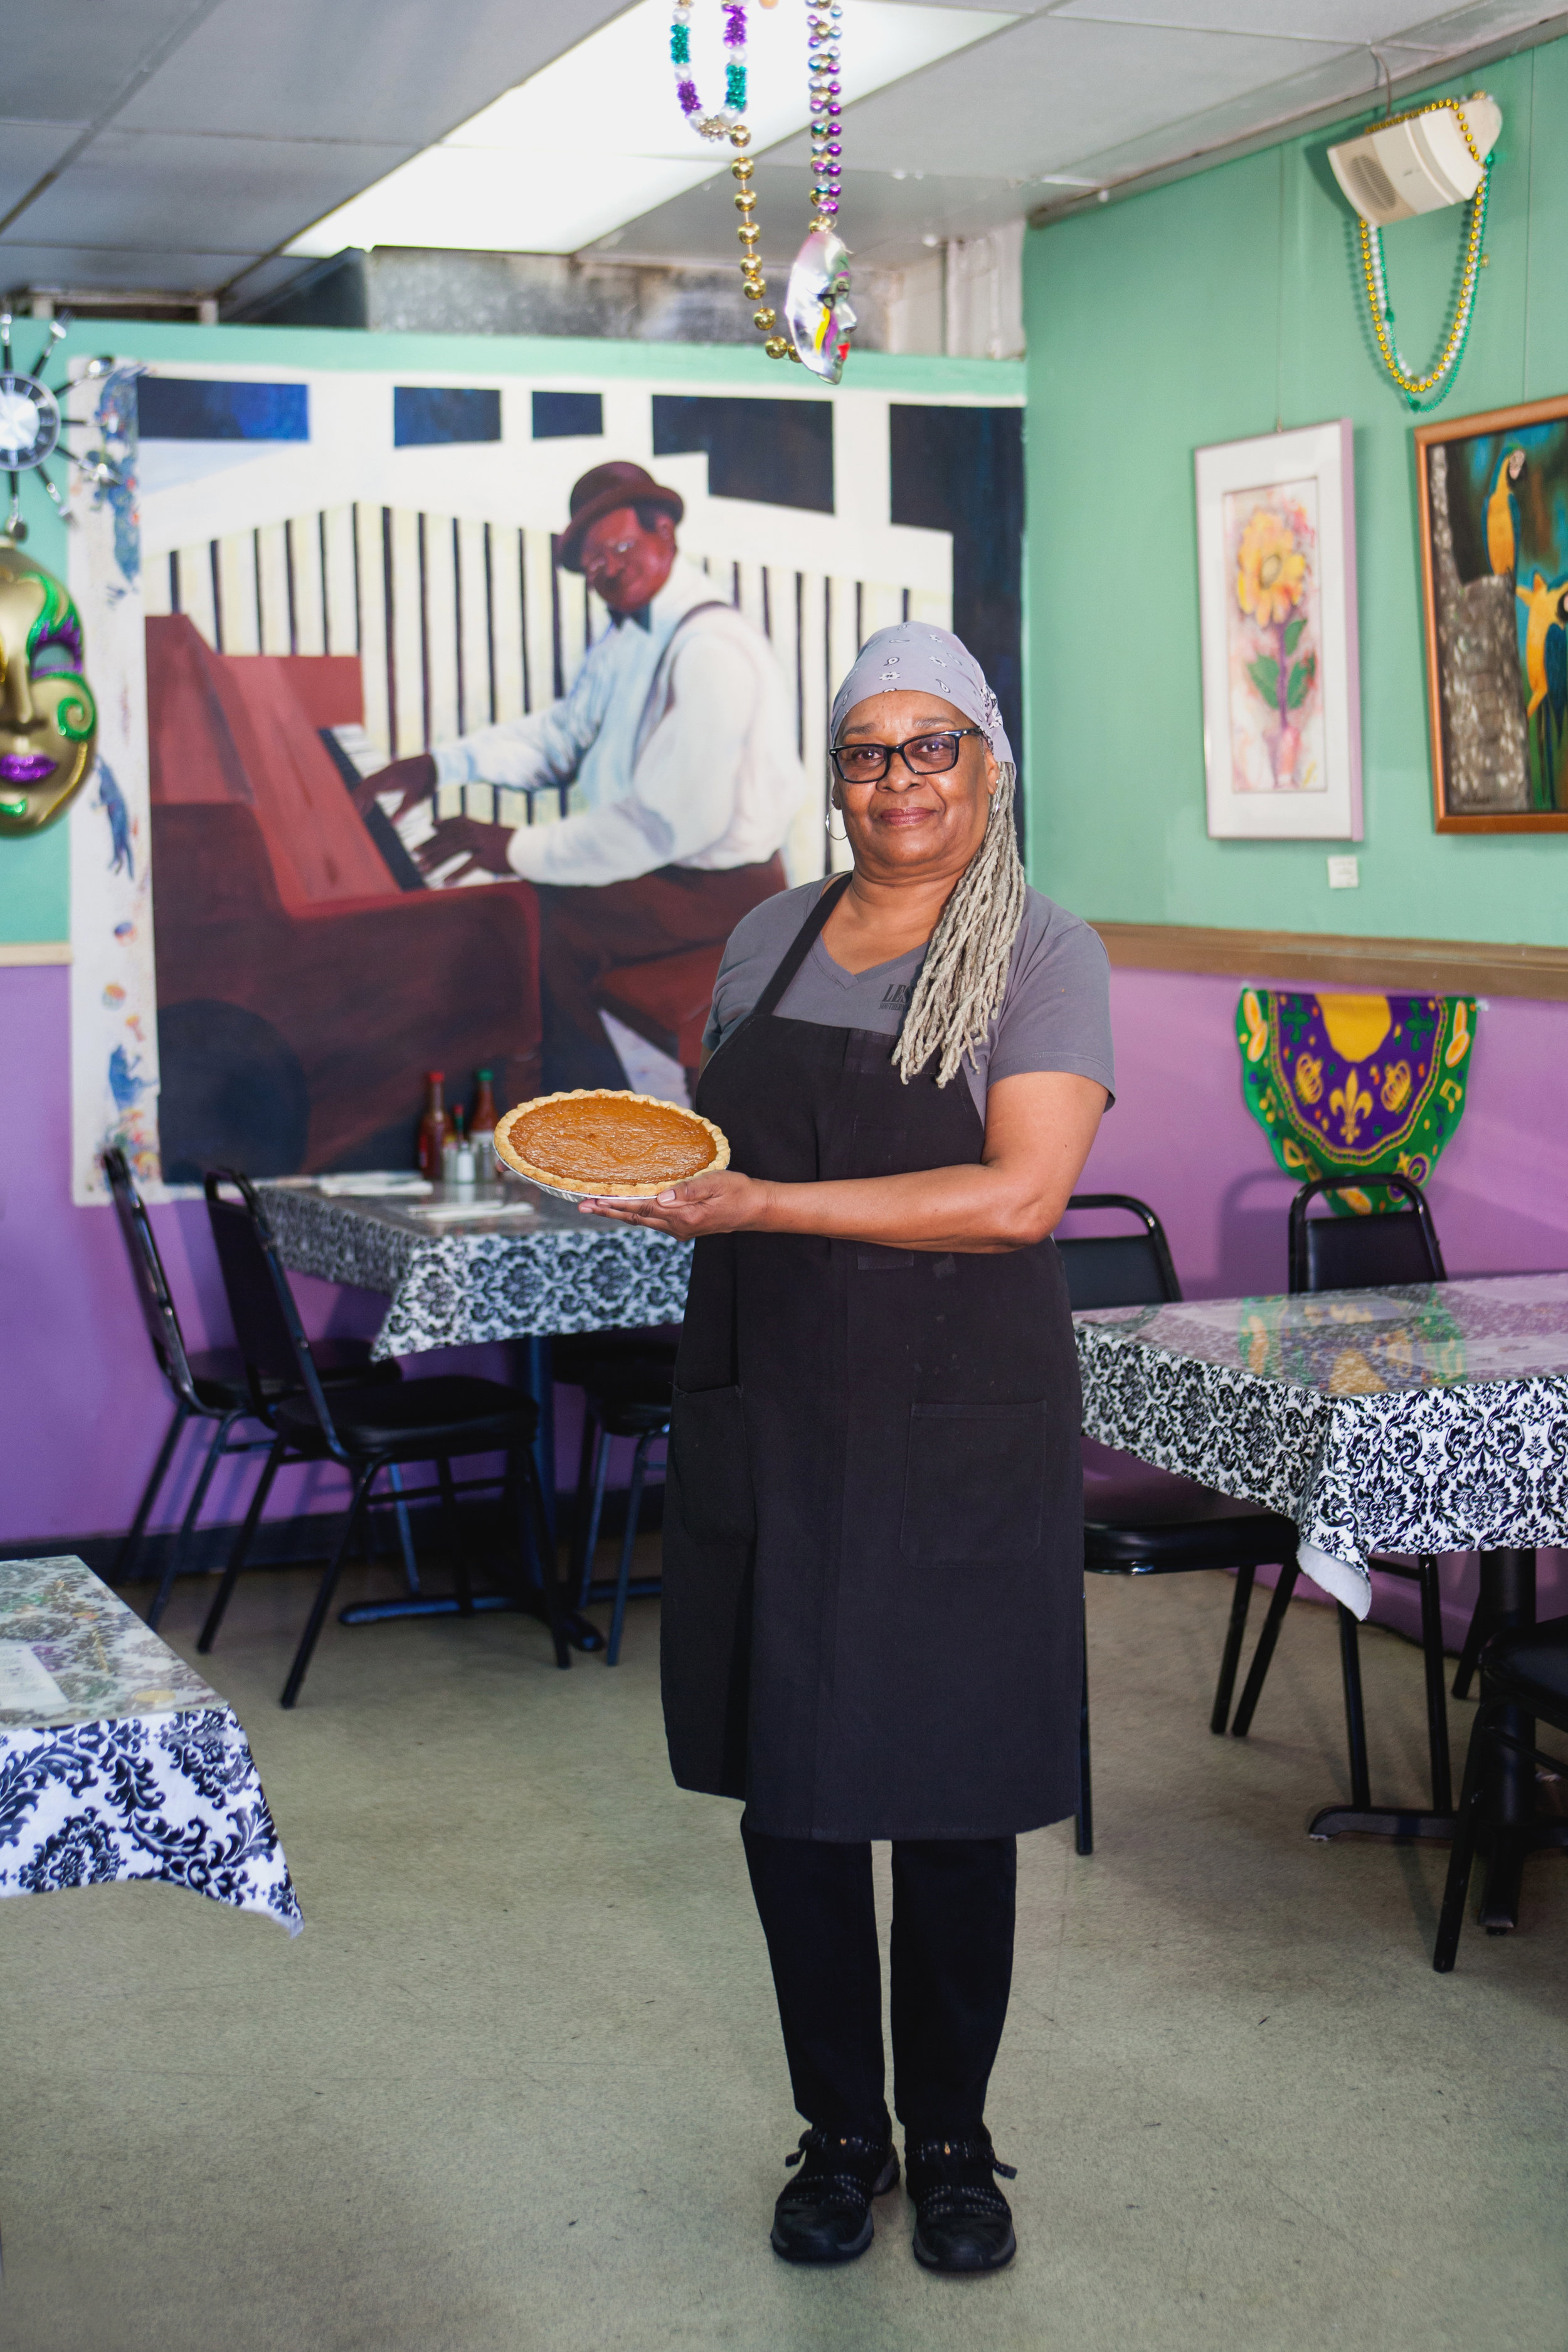 """Pat Fisher - Pat Fisher, 65, has been baking sweet potato pies at Les Sisters Southern Kitchen and BBQ in Chatsworth since 1992. """"I love what I'm doing. Plus I get to meet new people and I get to see lots of regulars. I've created a family here."""" She started serving at 15. """"I had my first crack at being a server here in LA at The Nickel Spot, one of the few Black-owned Southern restaurants in the '60s. It was so hard, I never wanted to do it again, but here I am, still serving."""""""